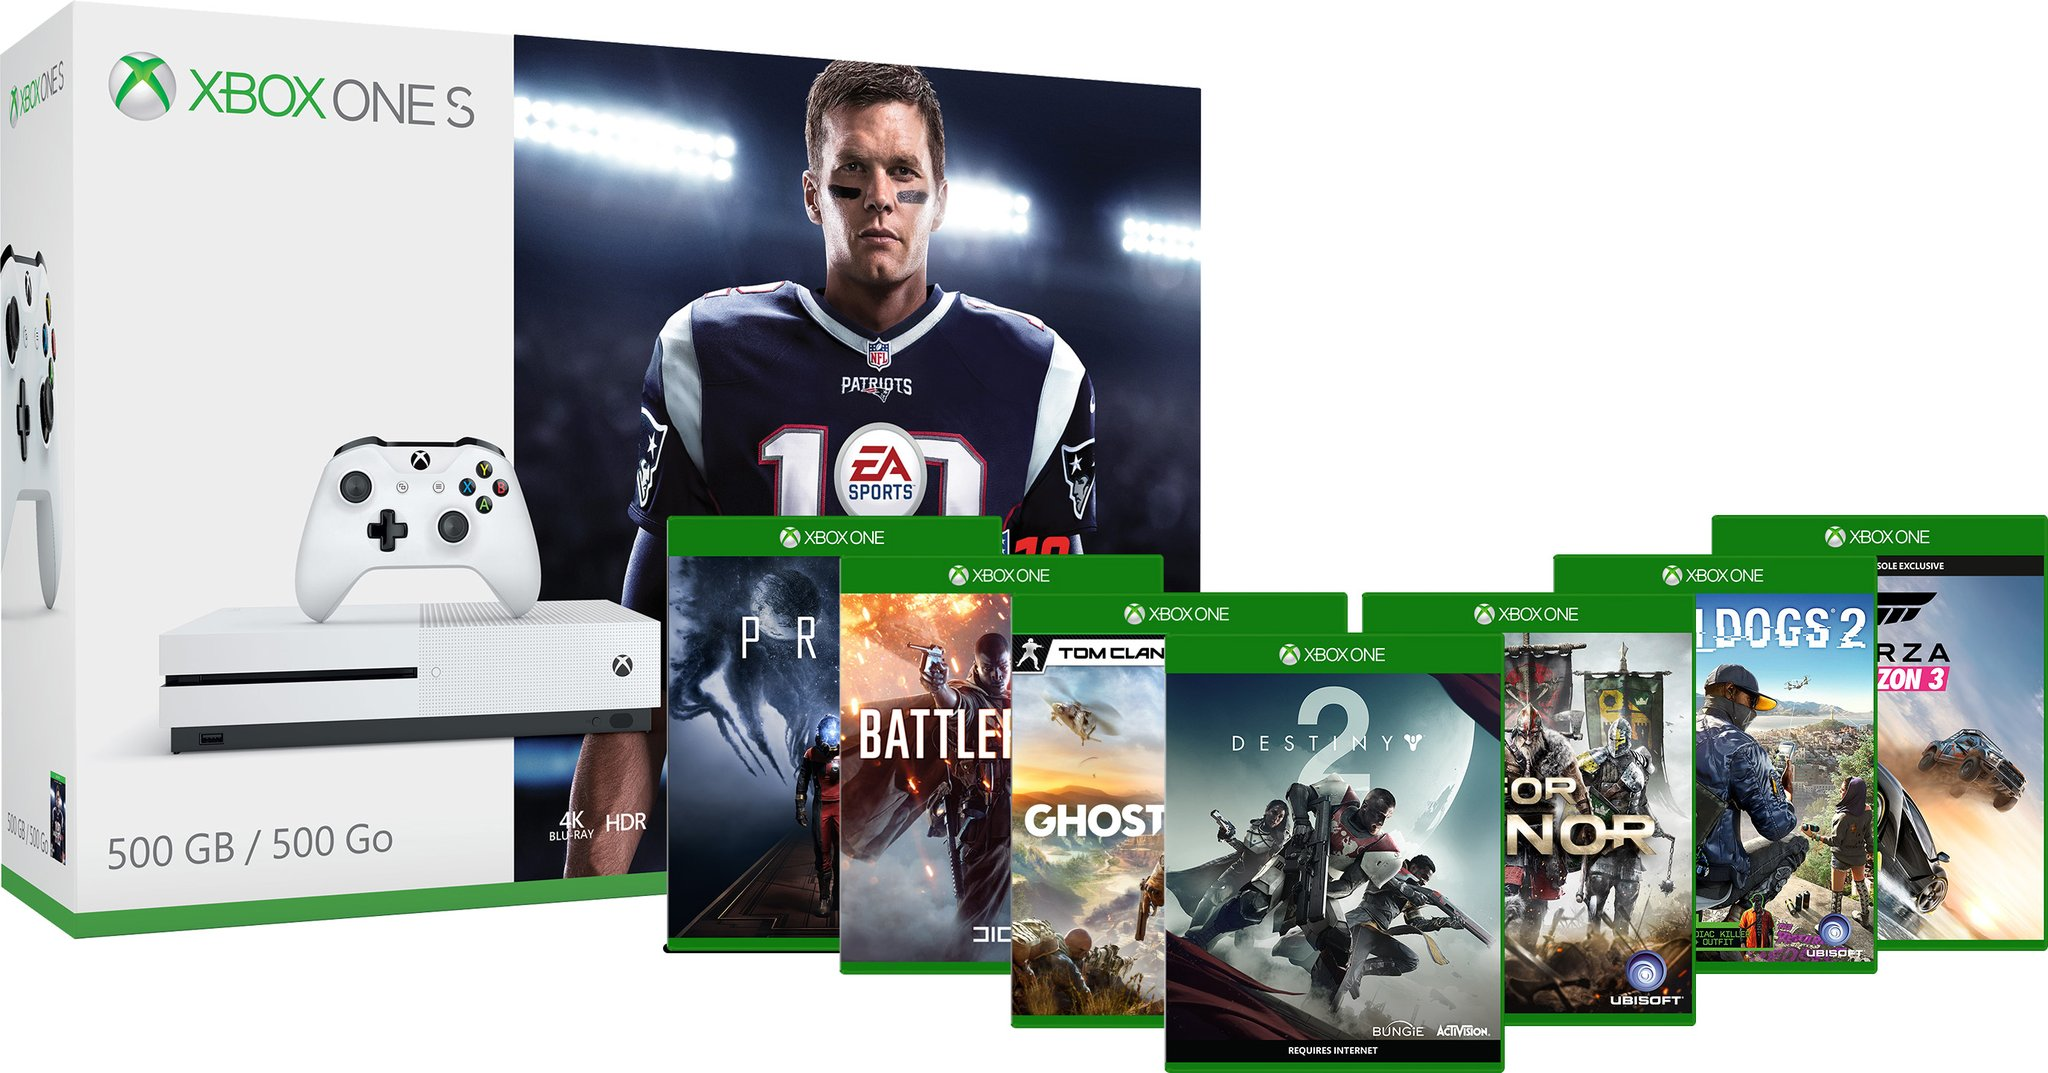 Last Day: Get 2 free games and 3 months of Groove Music with Xbox One S bundles 1